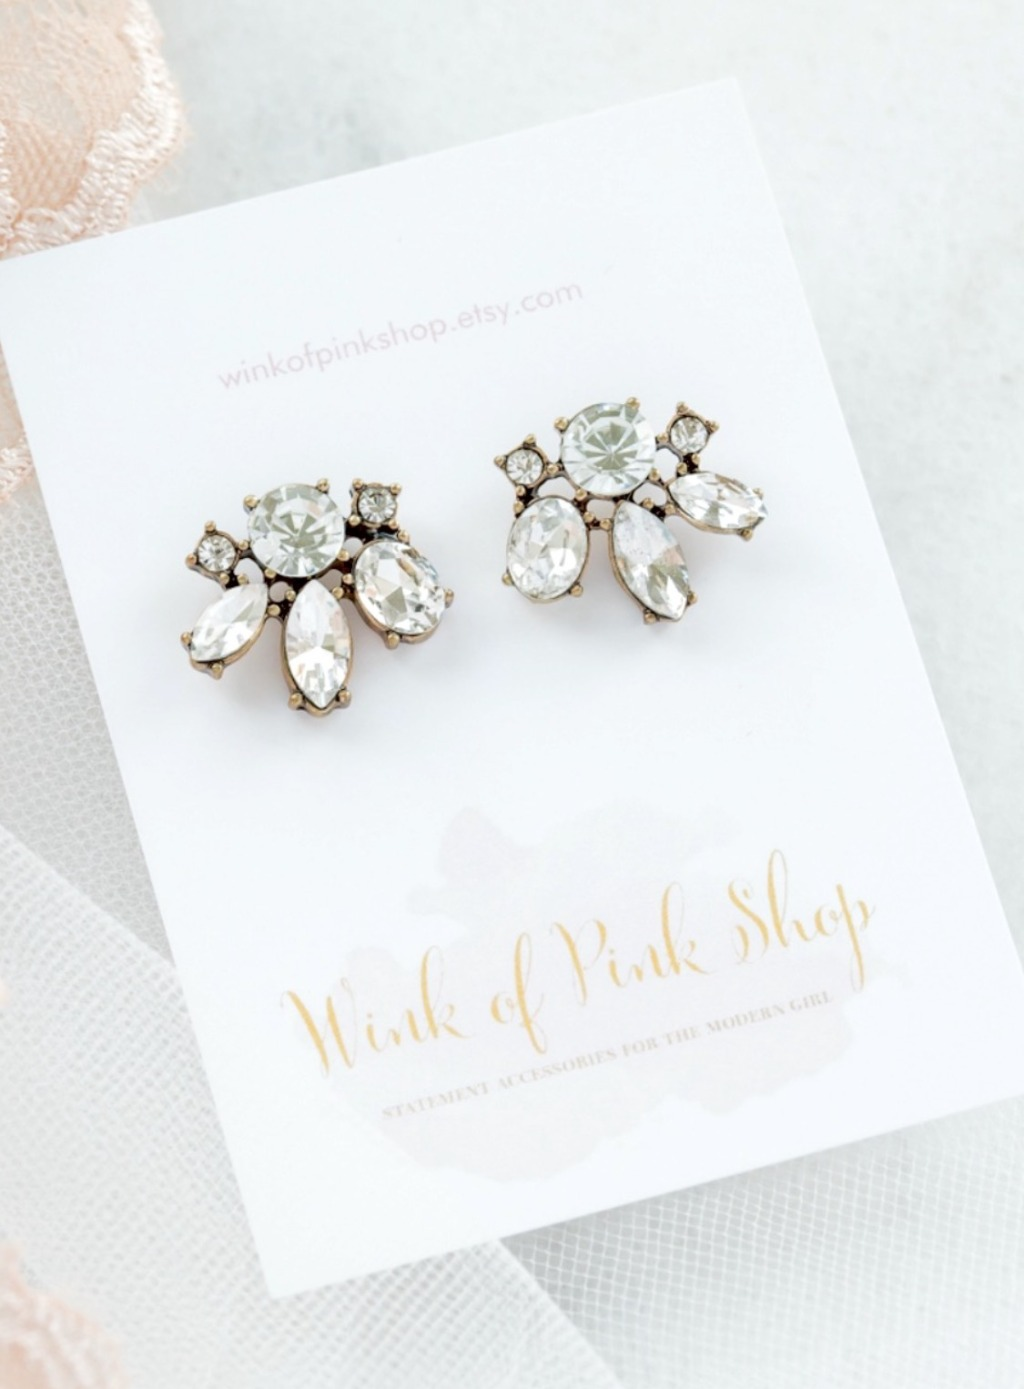 Your bridesmaids will sparkle in these Madison Bridesmaid Earrings. These earrings are great because they can be worn on formal and